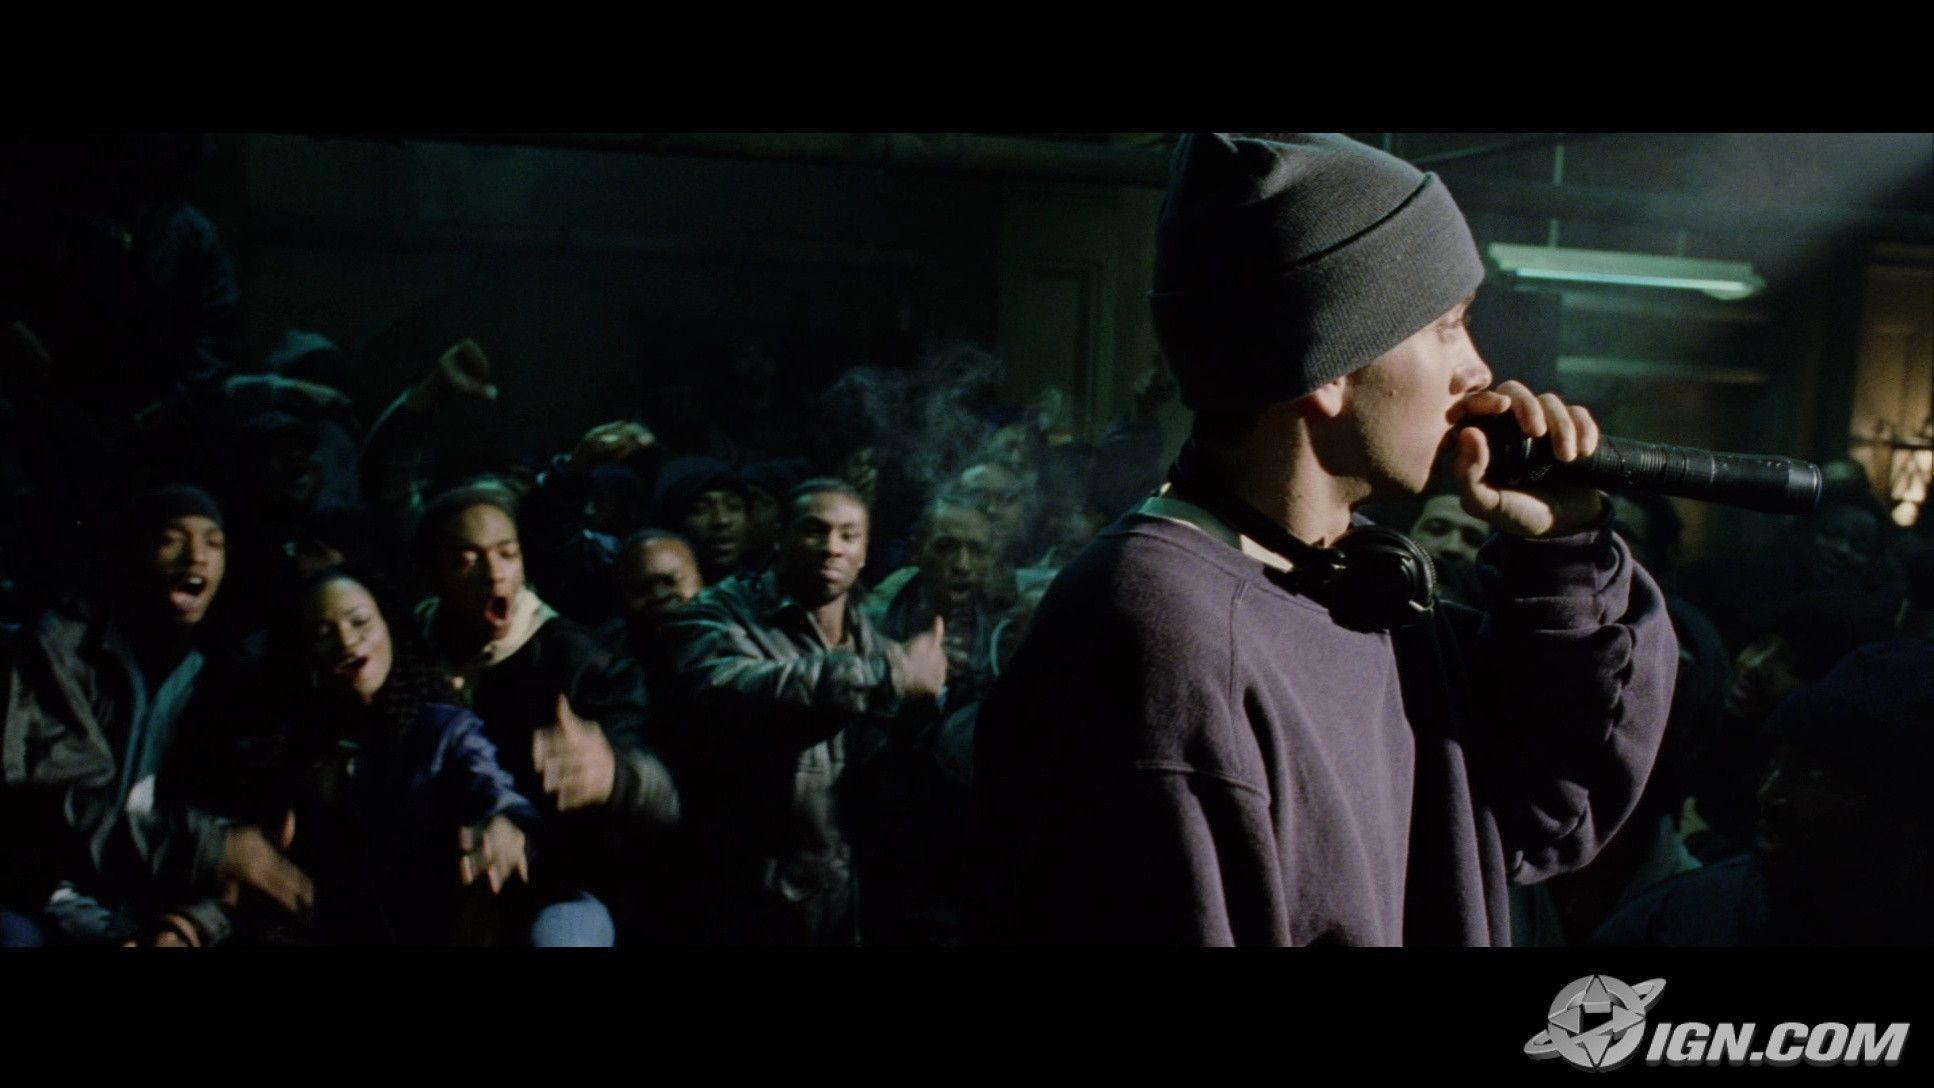 Themes of violence and hatred in eminems music